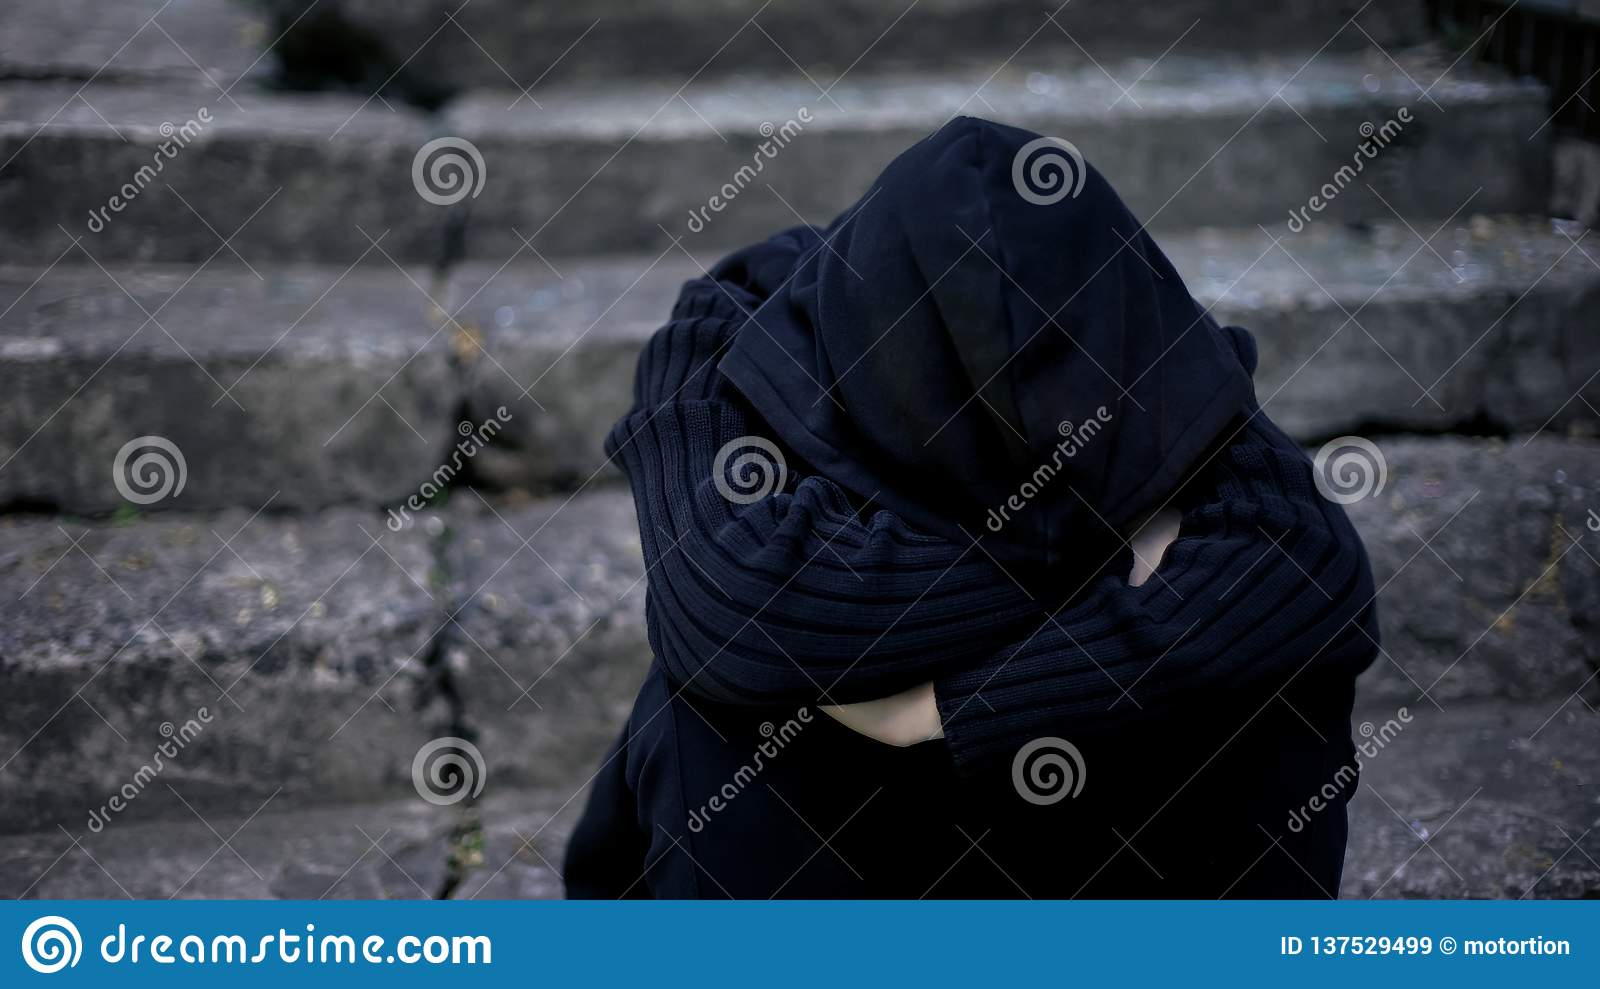 Miserable teenager wrapping in hood, going to sleep on street, depression crisis